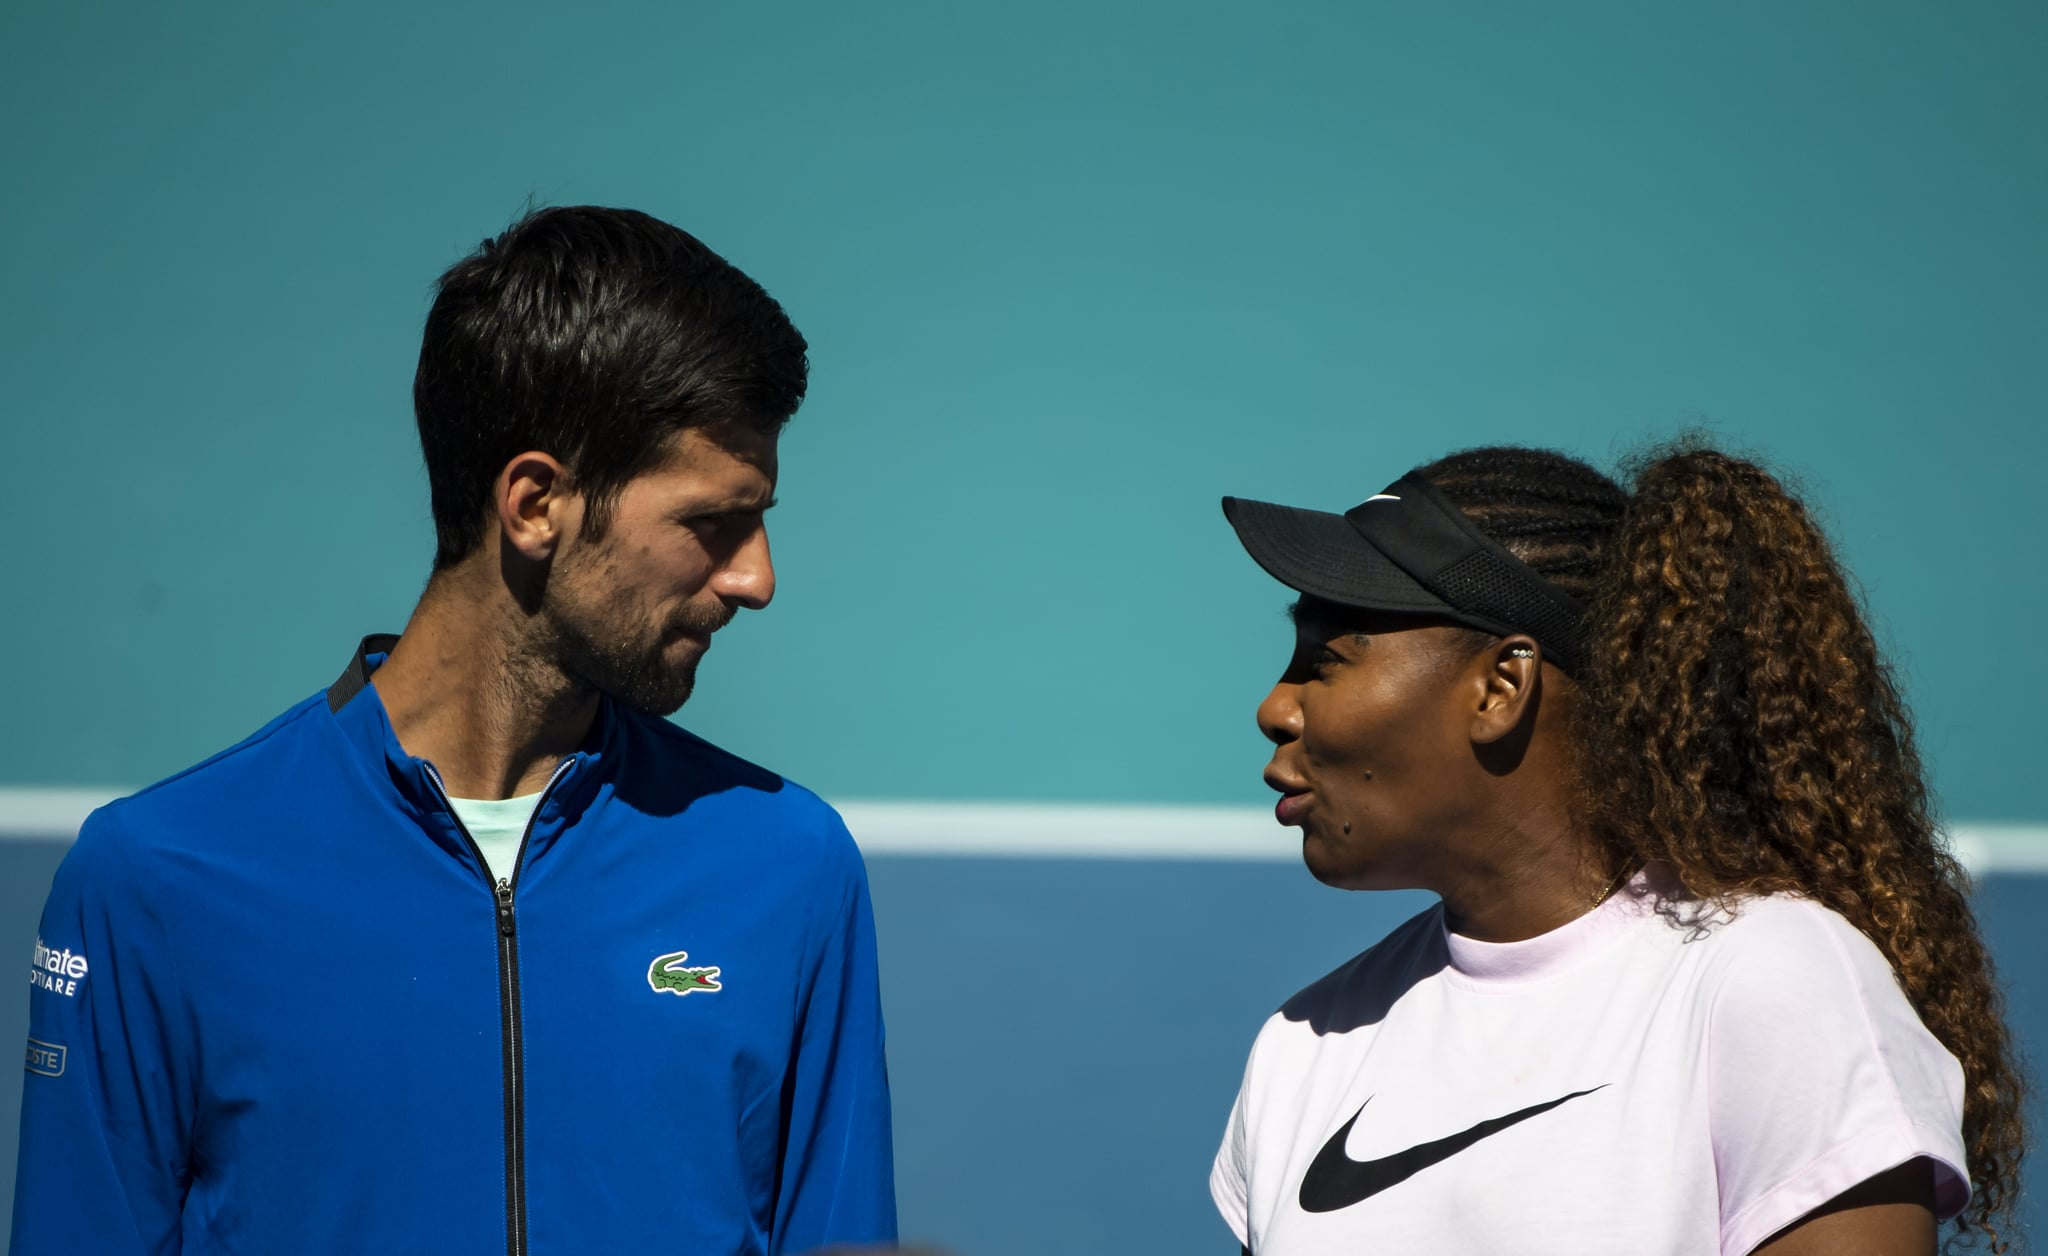 MIAMI GARDENS, FLORIDA - MARCH 20: (L-R) Novak Djokovic of Serbia and Serena Williams of the United States talk during the ribbon cutting ceremony on the new Stadium Court at the Hard Rock Stadium, before the first match of the Miami Open on March 20, 2019 in Miami Gardens, Florida. (Photo by TPN/Getty Images)